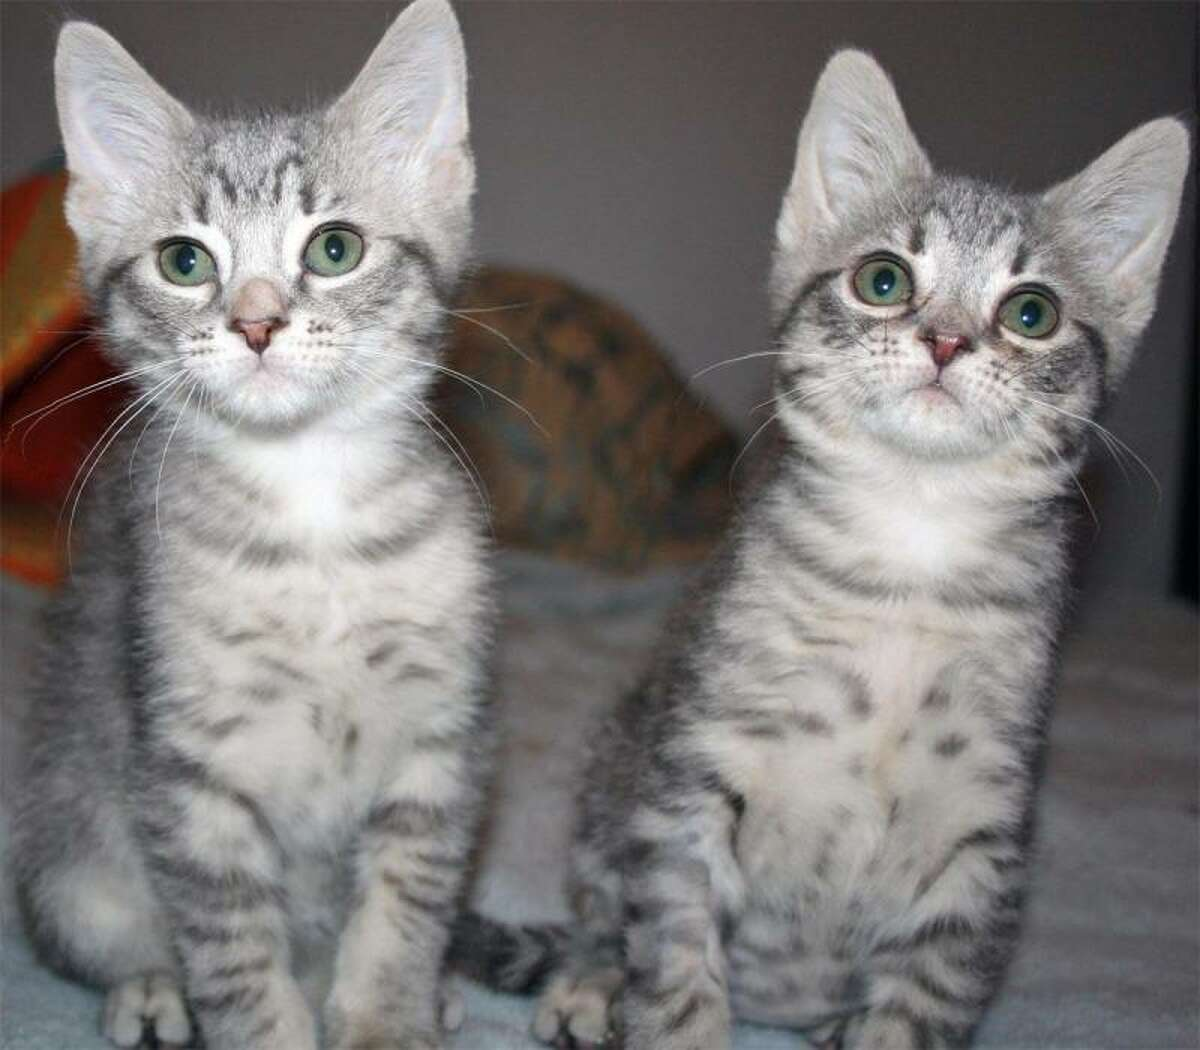 Asher and Ashleigh are just a few of the playful kittens ready for adoption at Whiskers. (Mary Lou Baker)